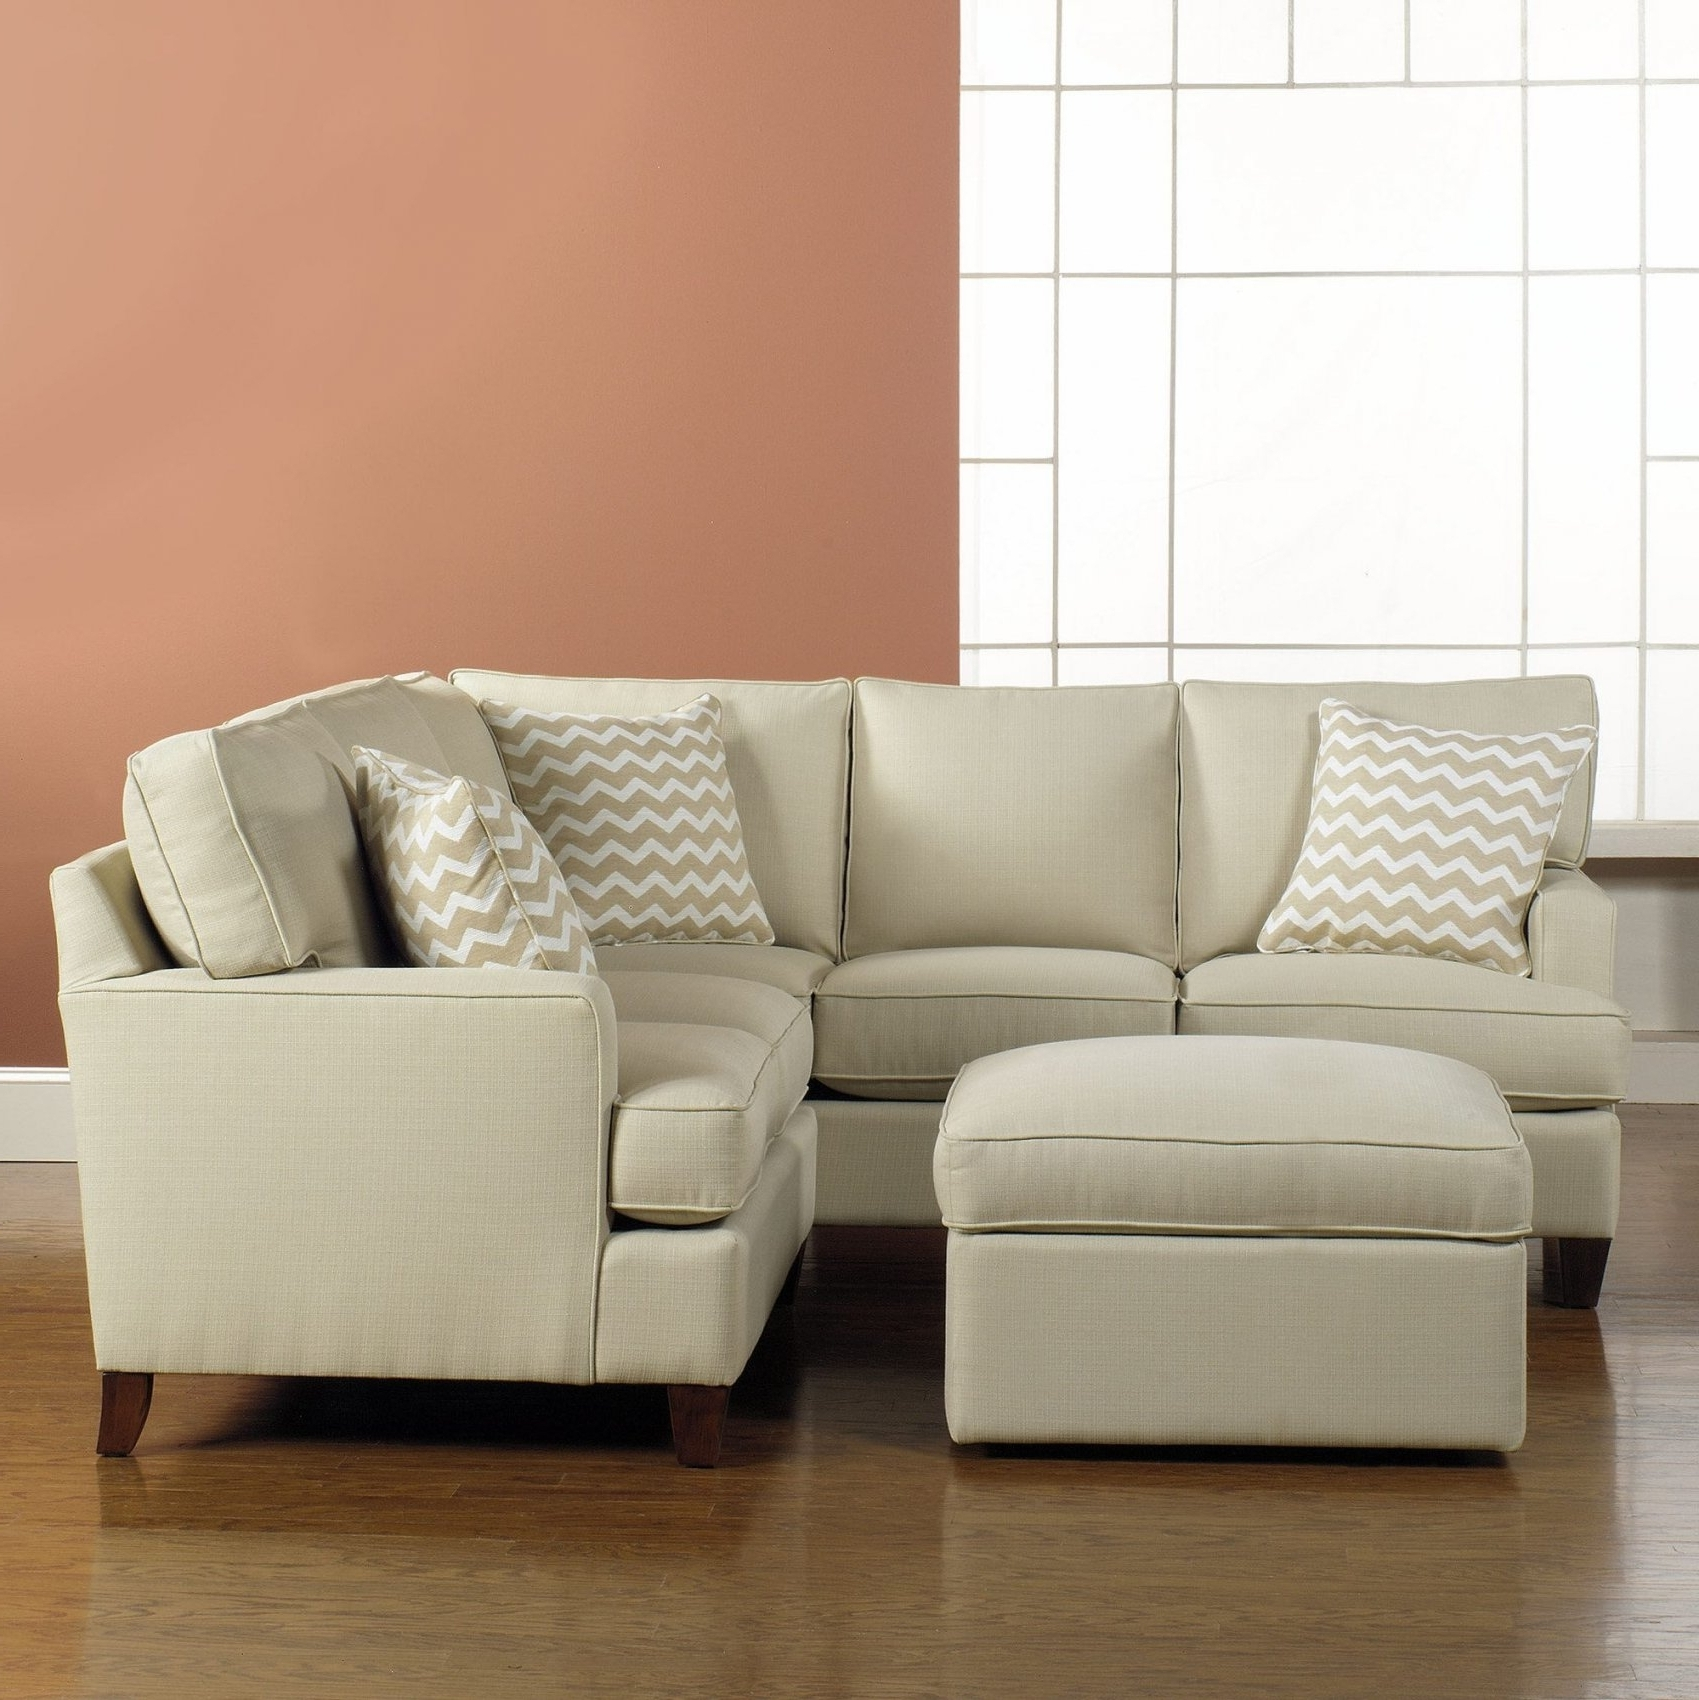 Well Known Sectional Sofa For Small Spaces 94 In Living Room Sofa With Pertaining To Sectional Sofas For Small Areas (View 5 of 15)